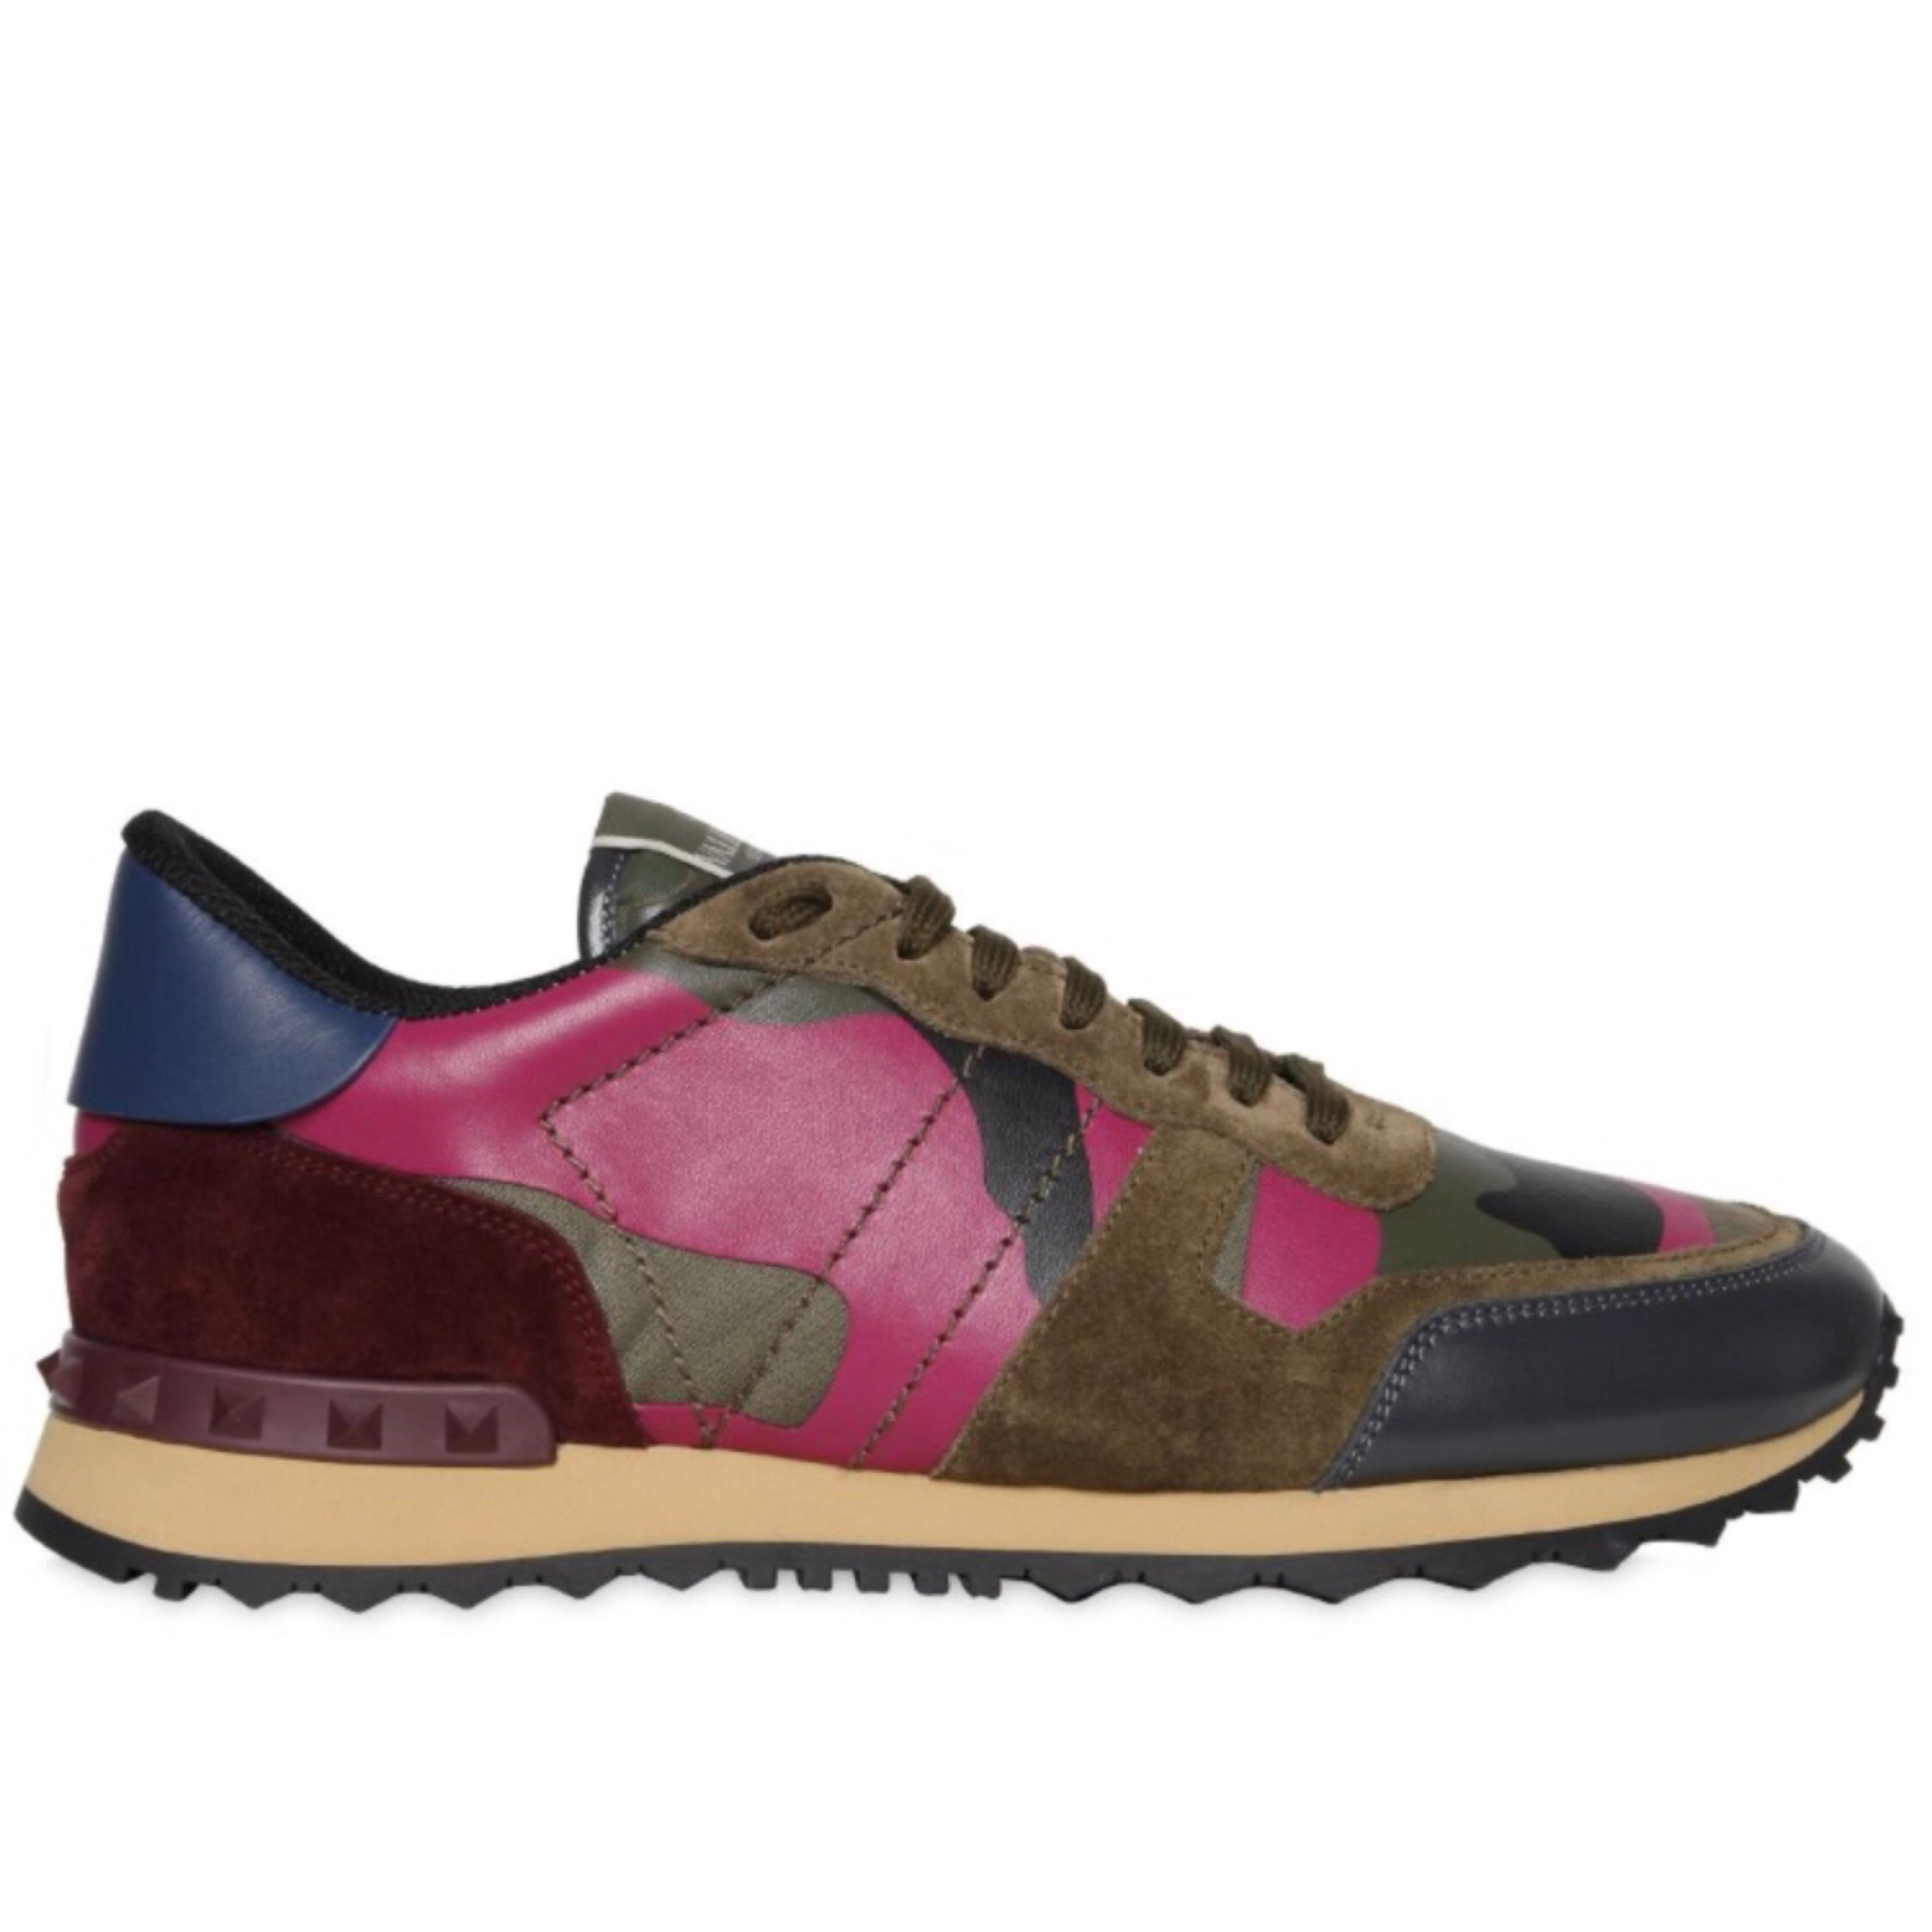 Valentino Maroon Blue and Green Men's Garavani Rockrunner Camouflage Sneakers Sneakers Size EU 43 (Approx. US 13) Regular (M, B)